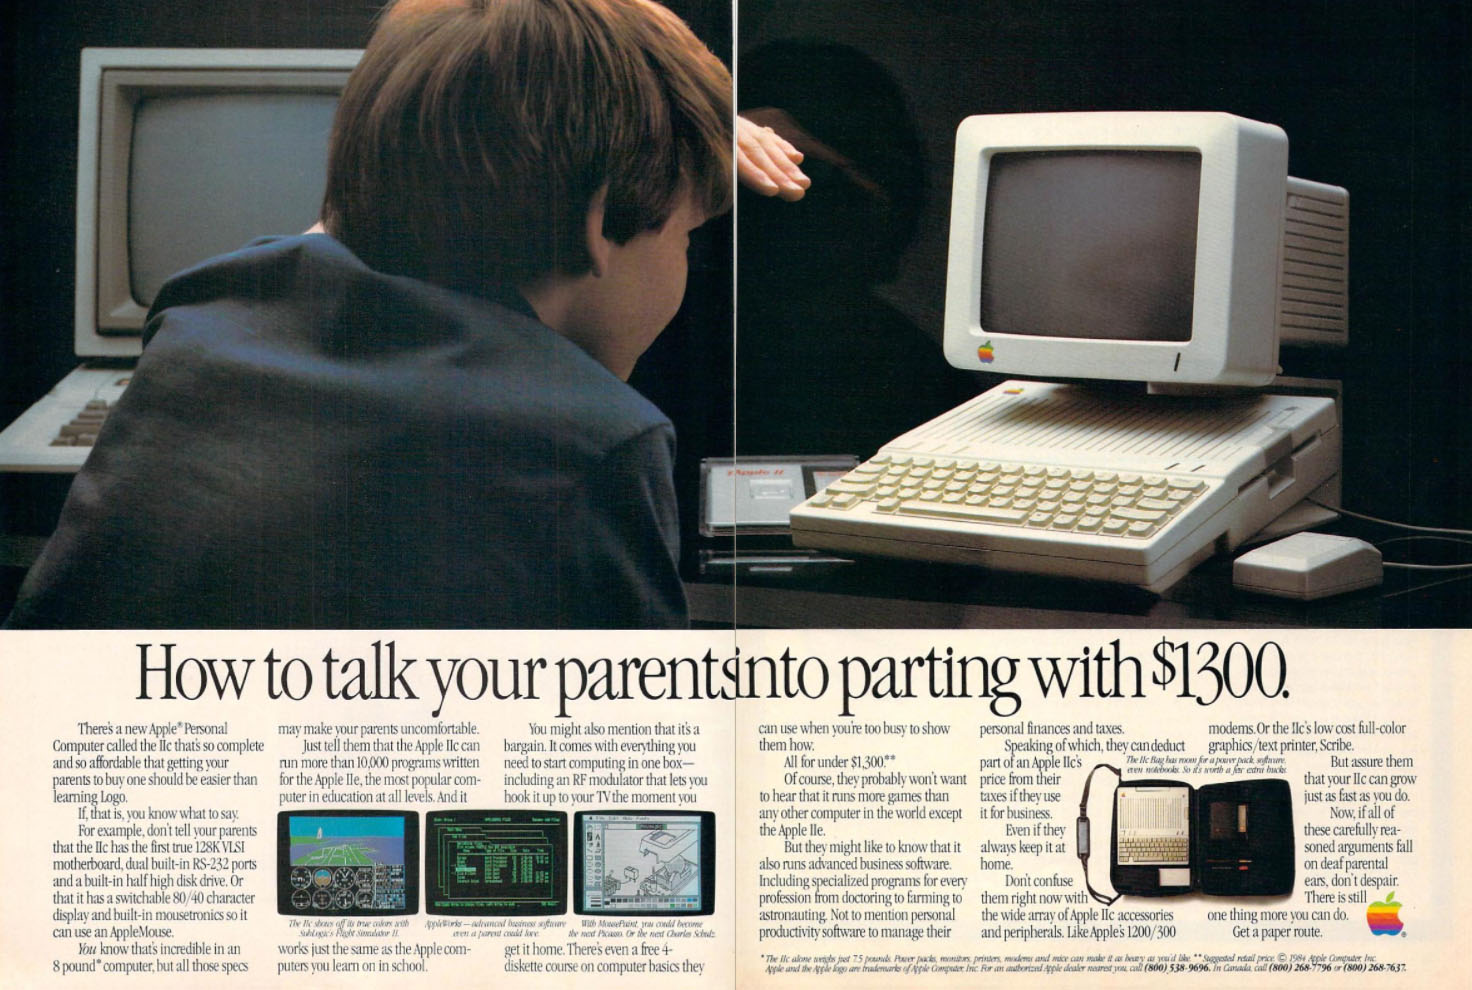 tr-computer-early80s-apple-kids.jpg